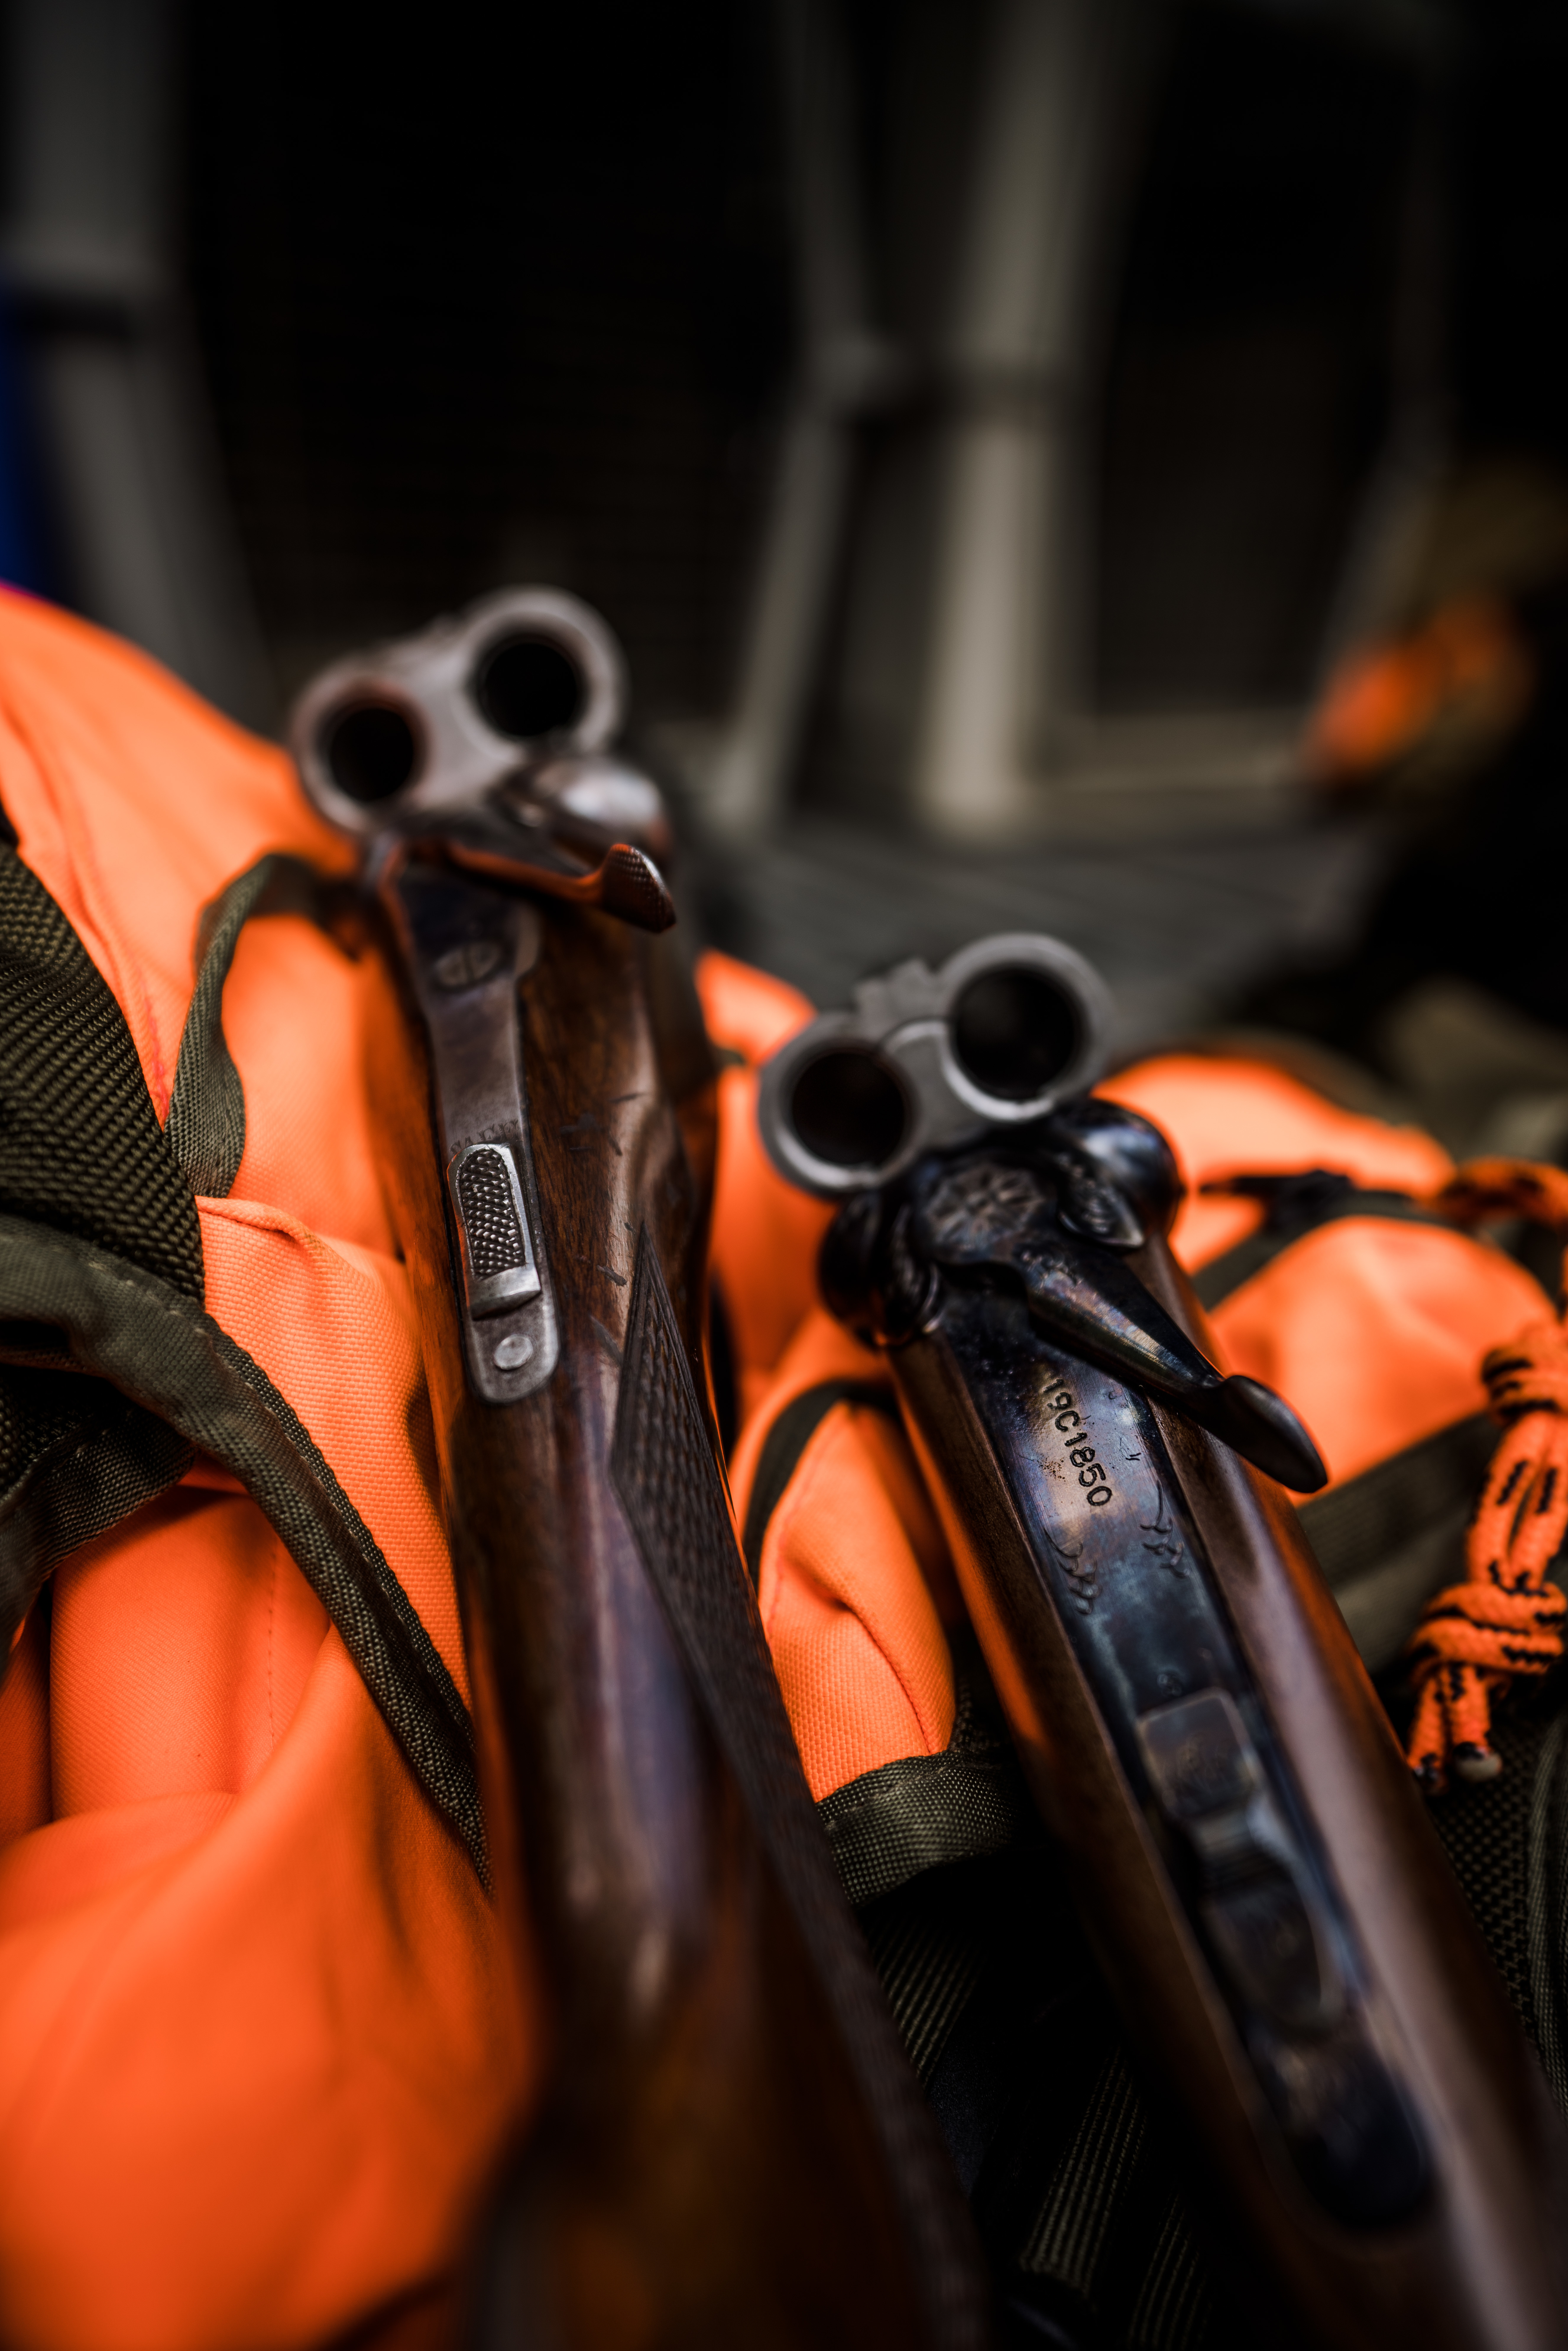 Two side-by-side shotguns rest on an orange upland vest.